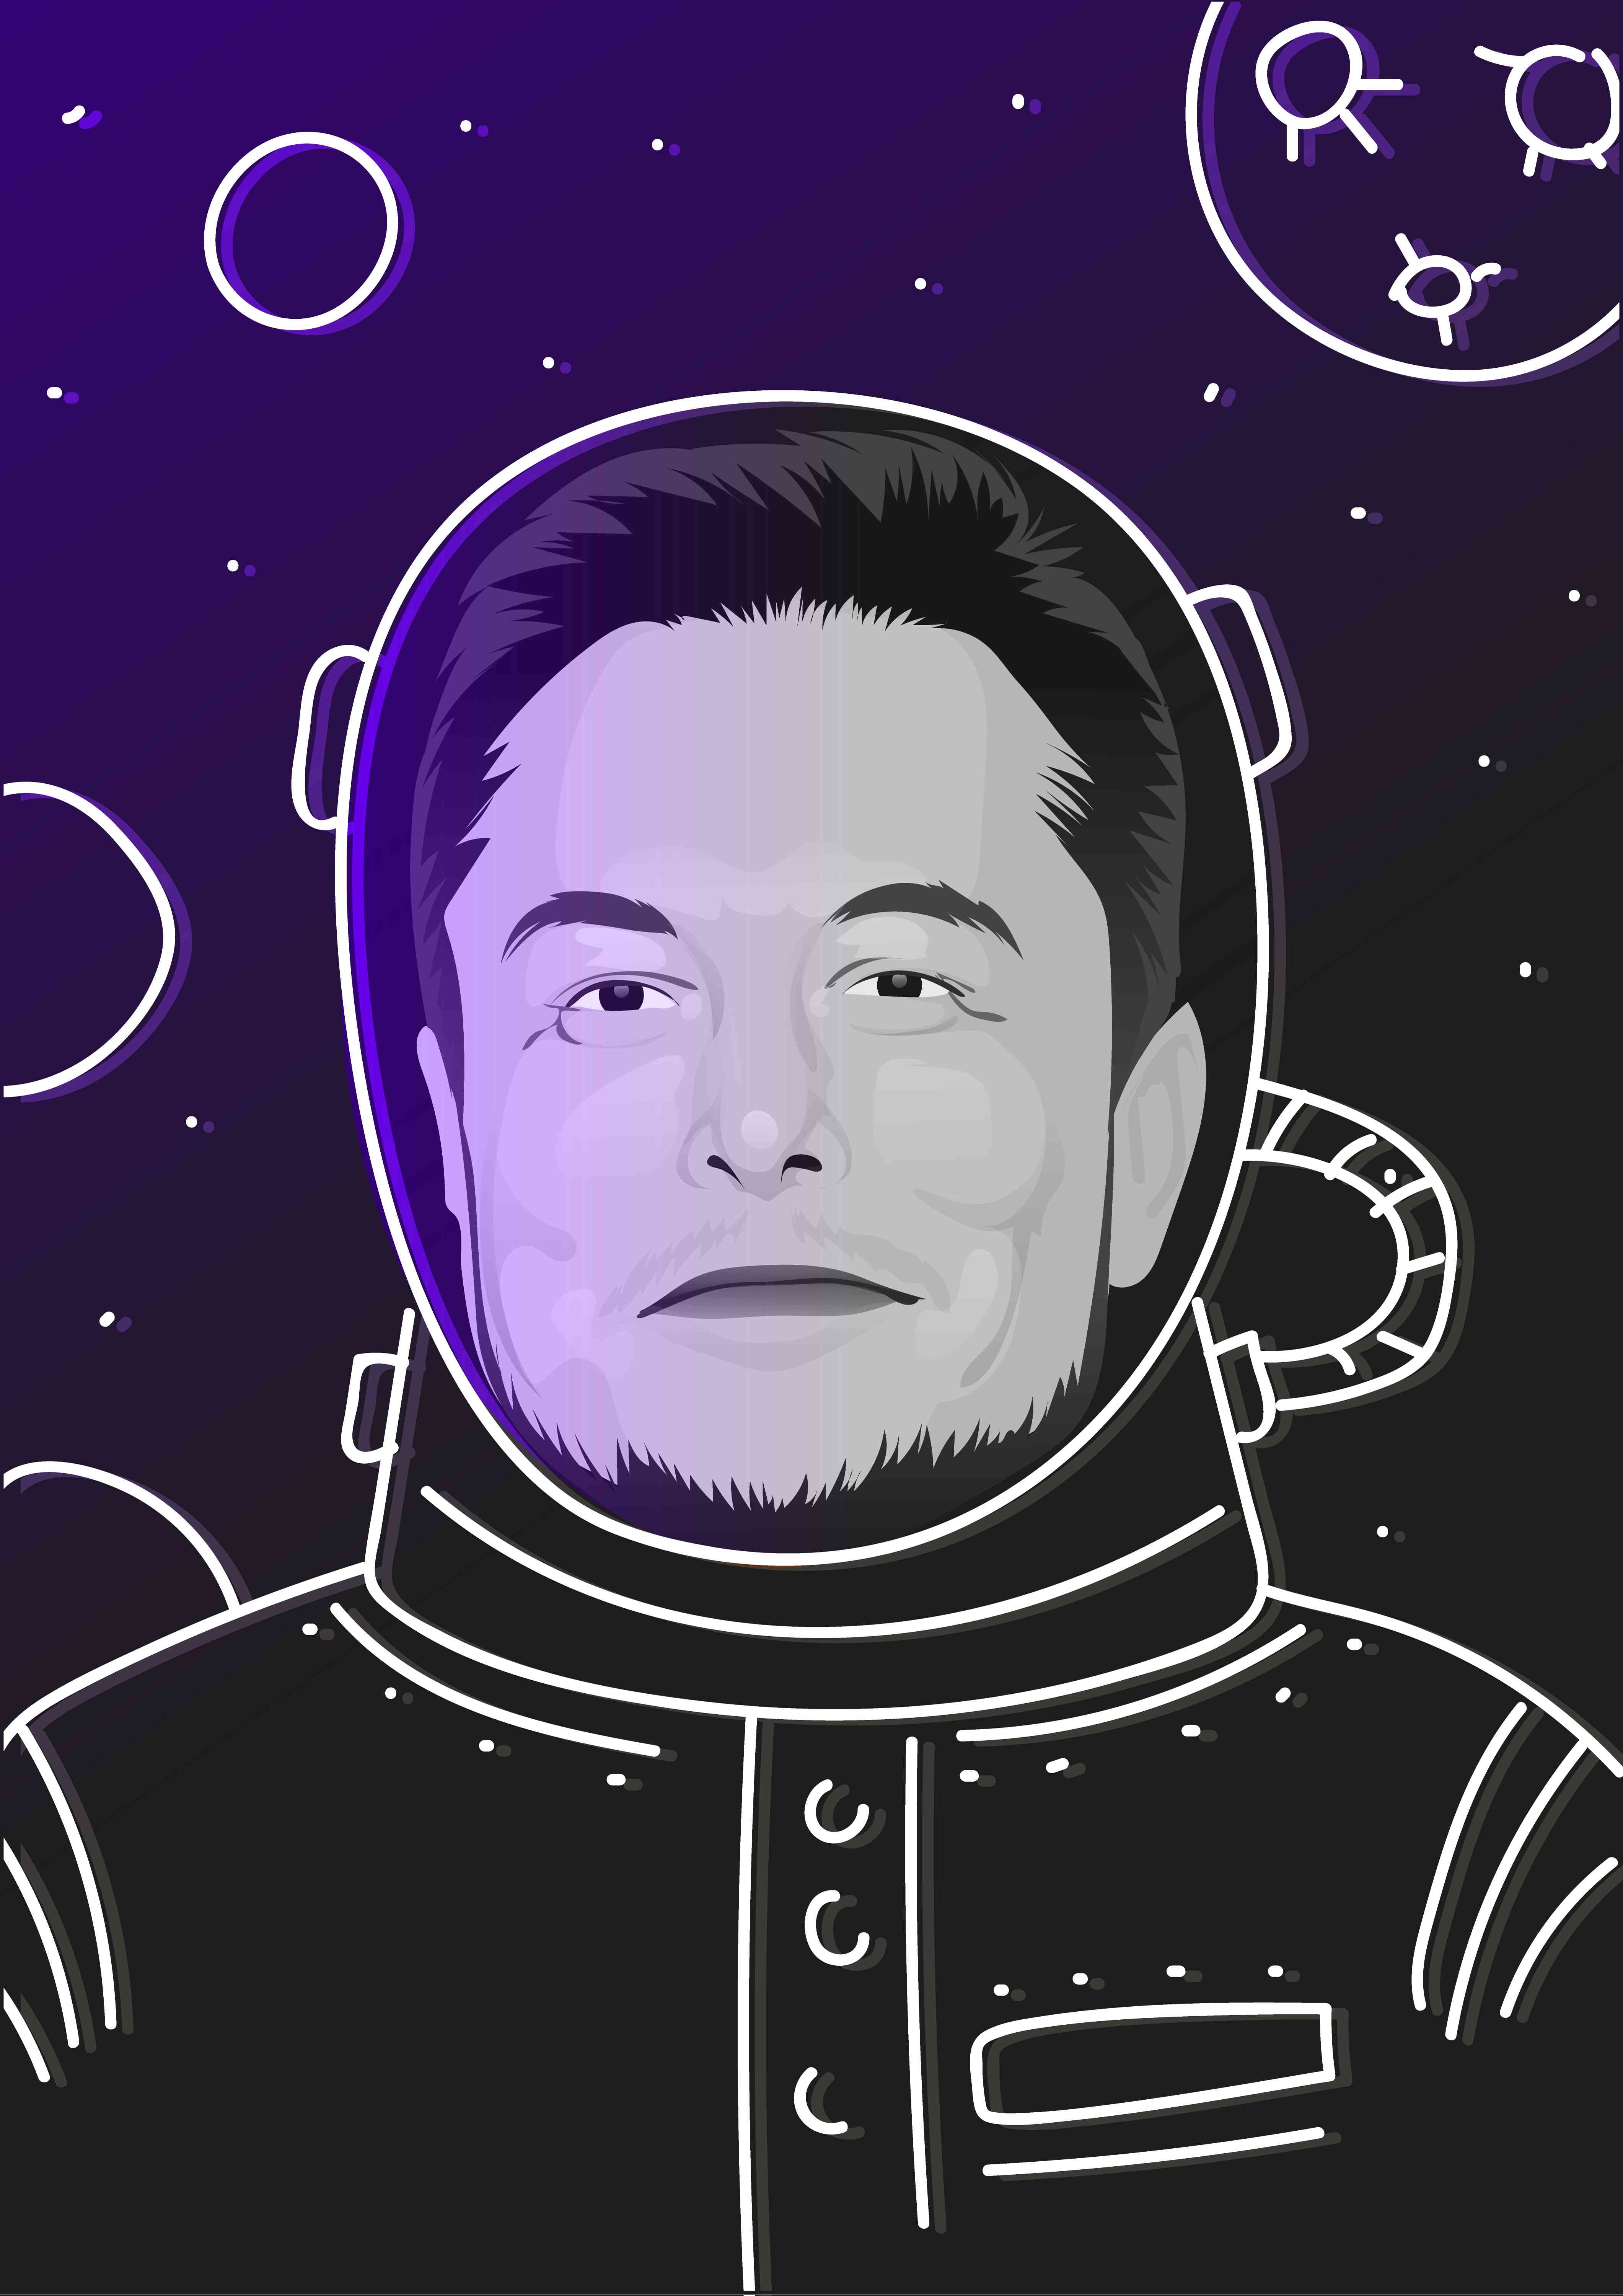 An illustration depicting Elon Musk in a spacesuit.